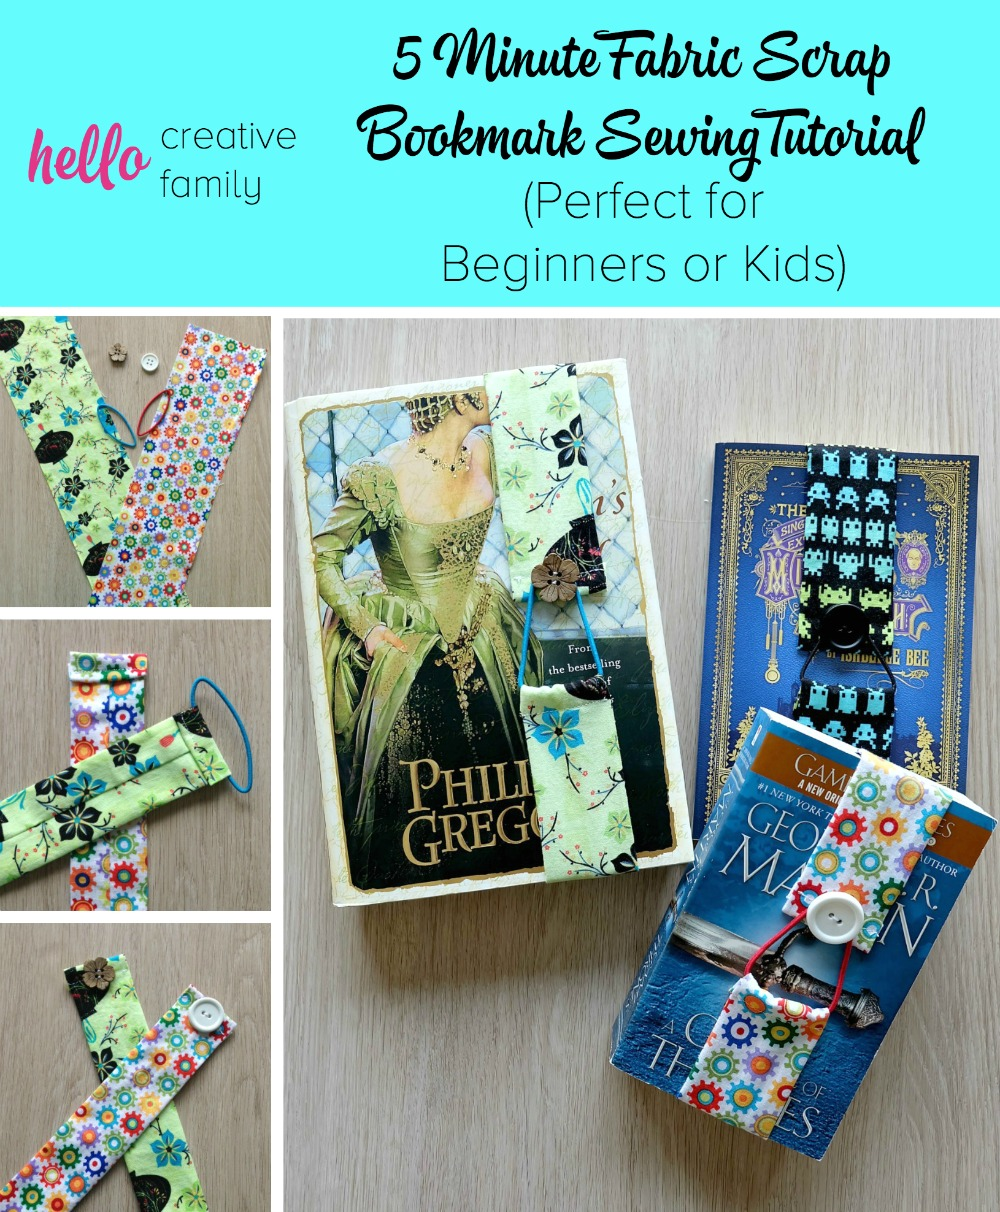 What a great beginner sewing project idea! It would make a great kid's craft project too! This 5 minute sewing project gives you step by step instructions, with photos for each step, on how to make a 5 minute fabric scrap bookmark! These would make great teacher gift ideas, stocking stuffer ideas, or father's day or mother's day gifts!